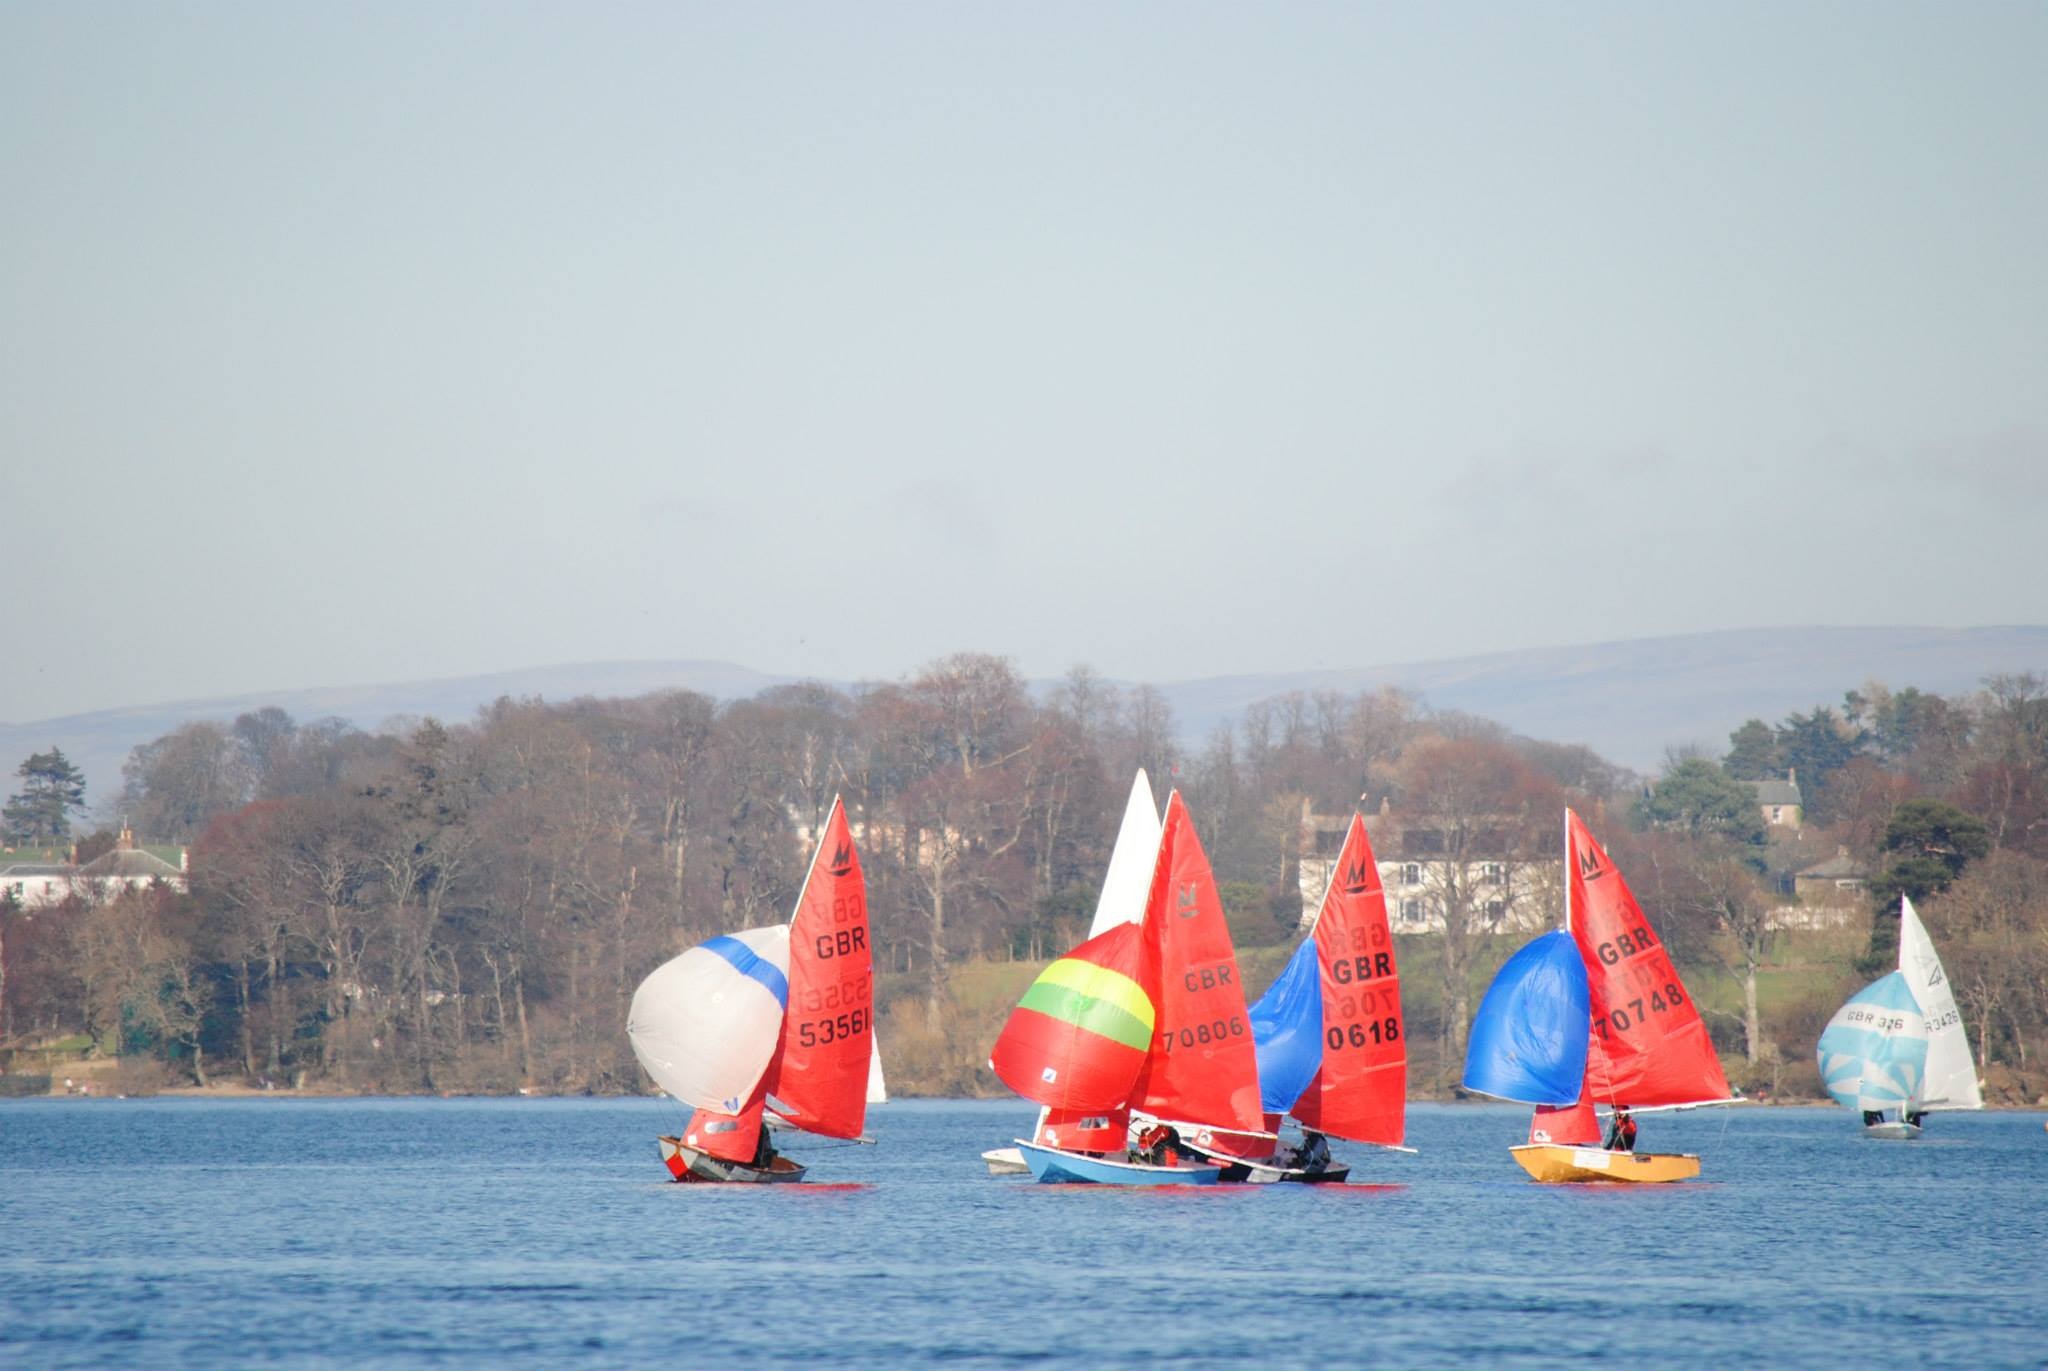 Mirror dinghies racing with spinnakers on a lake